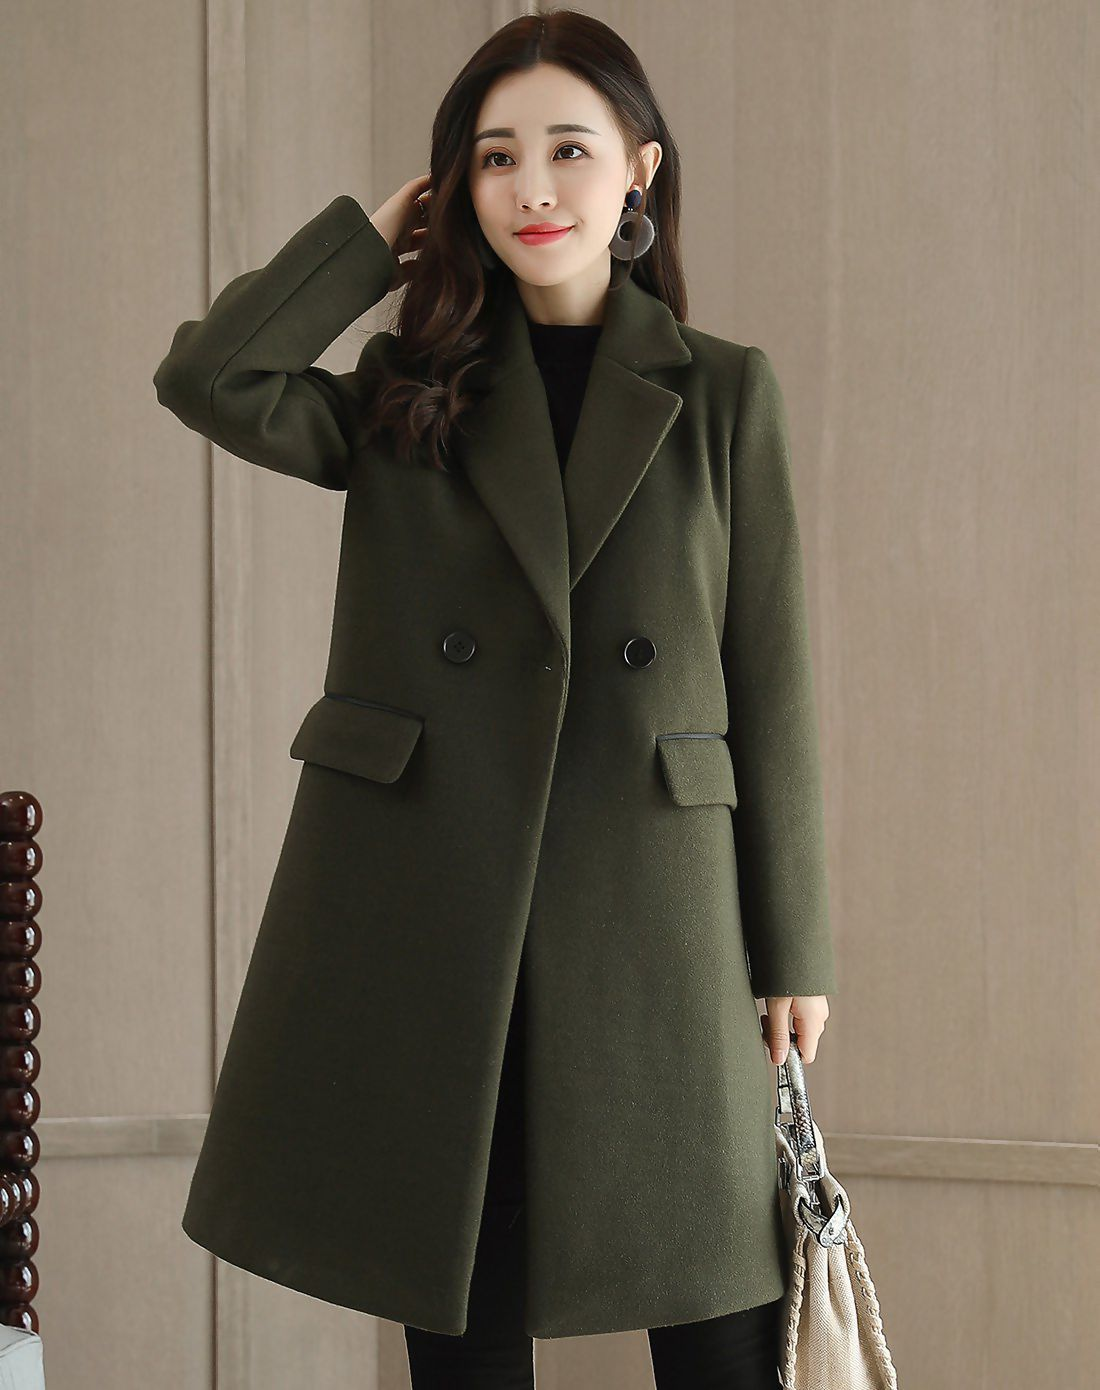 3e6617c1e0f9  VIPshop Green Lapel Double Breasted Long Sleeve Shift Women s Coat ❤ Get  more outfit ideas and style inspiration from fashion designers at VIP.com.